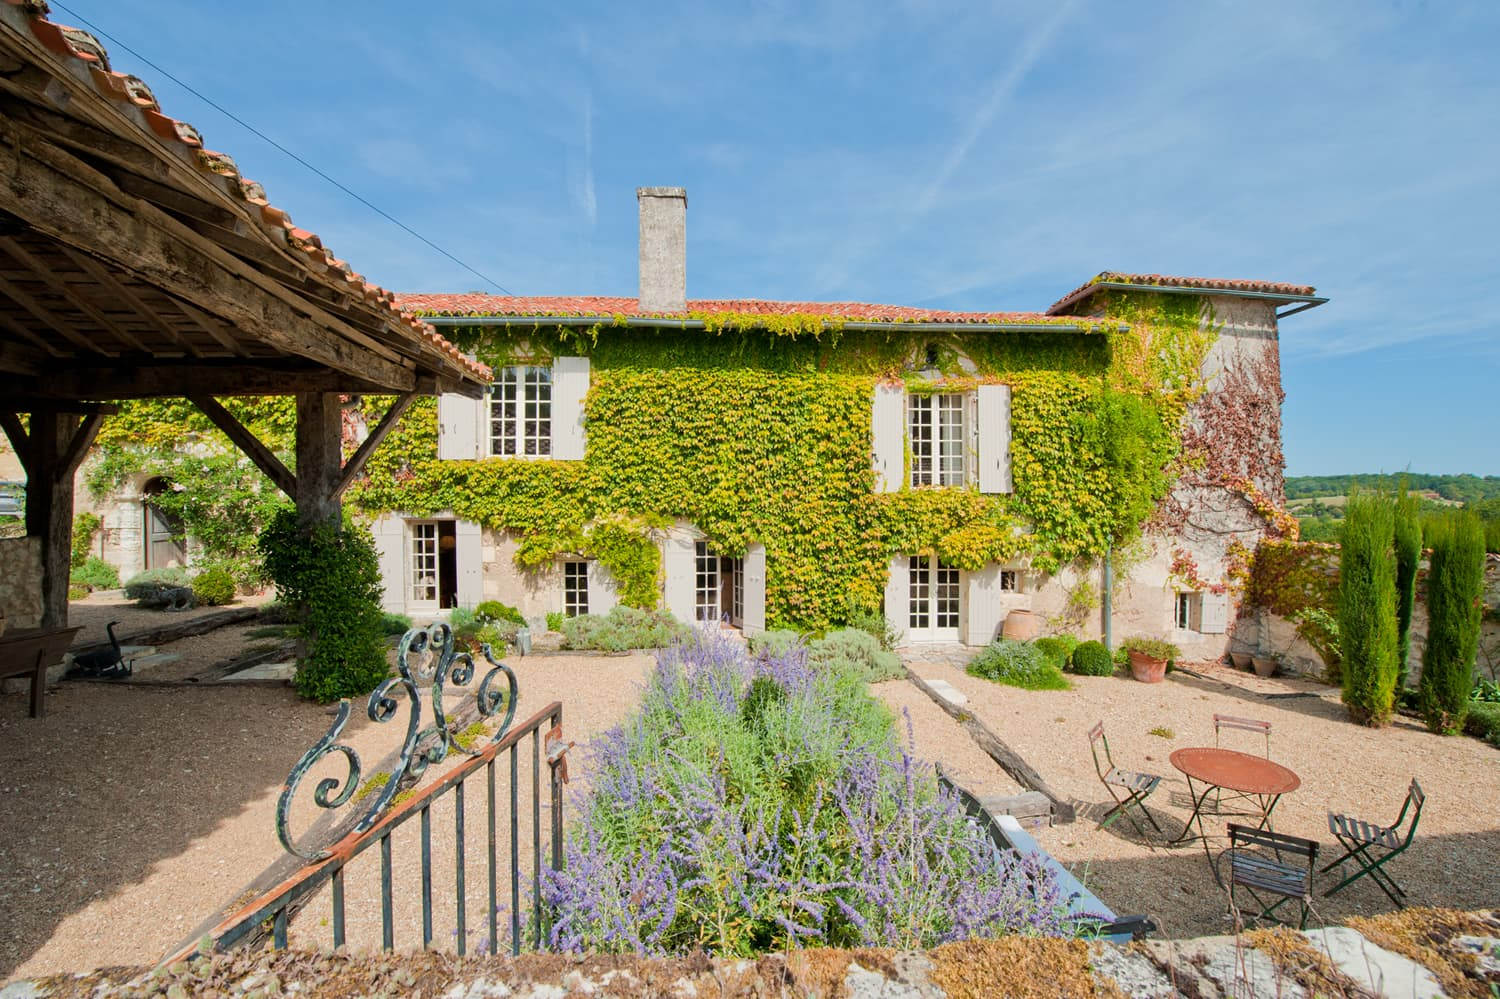 Rental accommodation in Dordogne